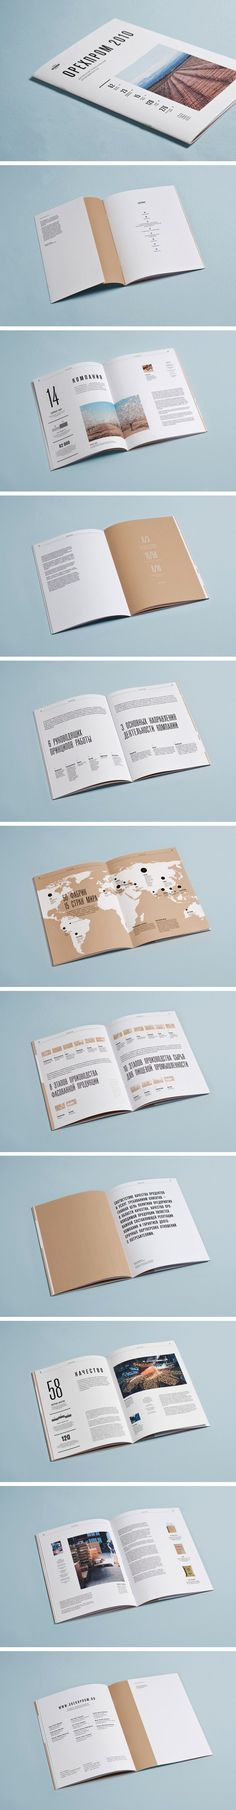 Interesante proyecto #design #layout